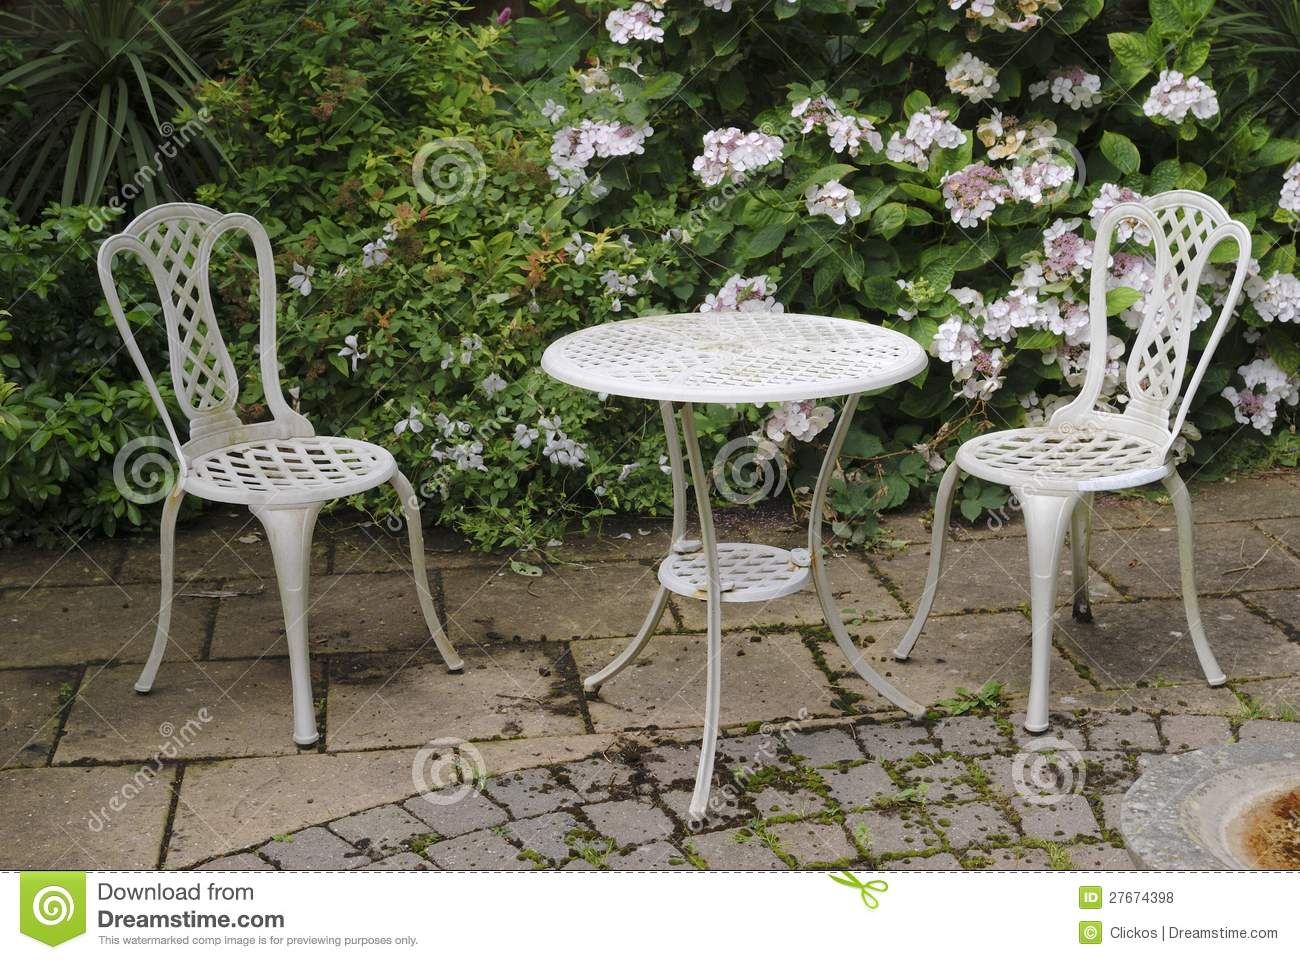 Garden Table And Chairs Royalty Free Stock Photos - Image: 27674398